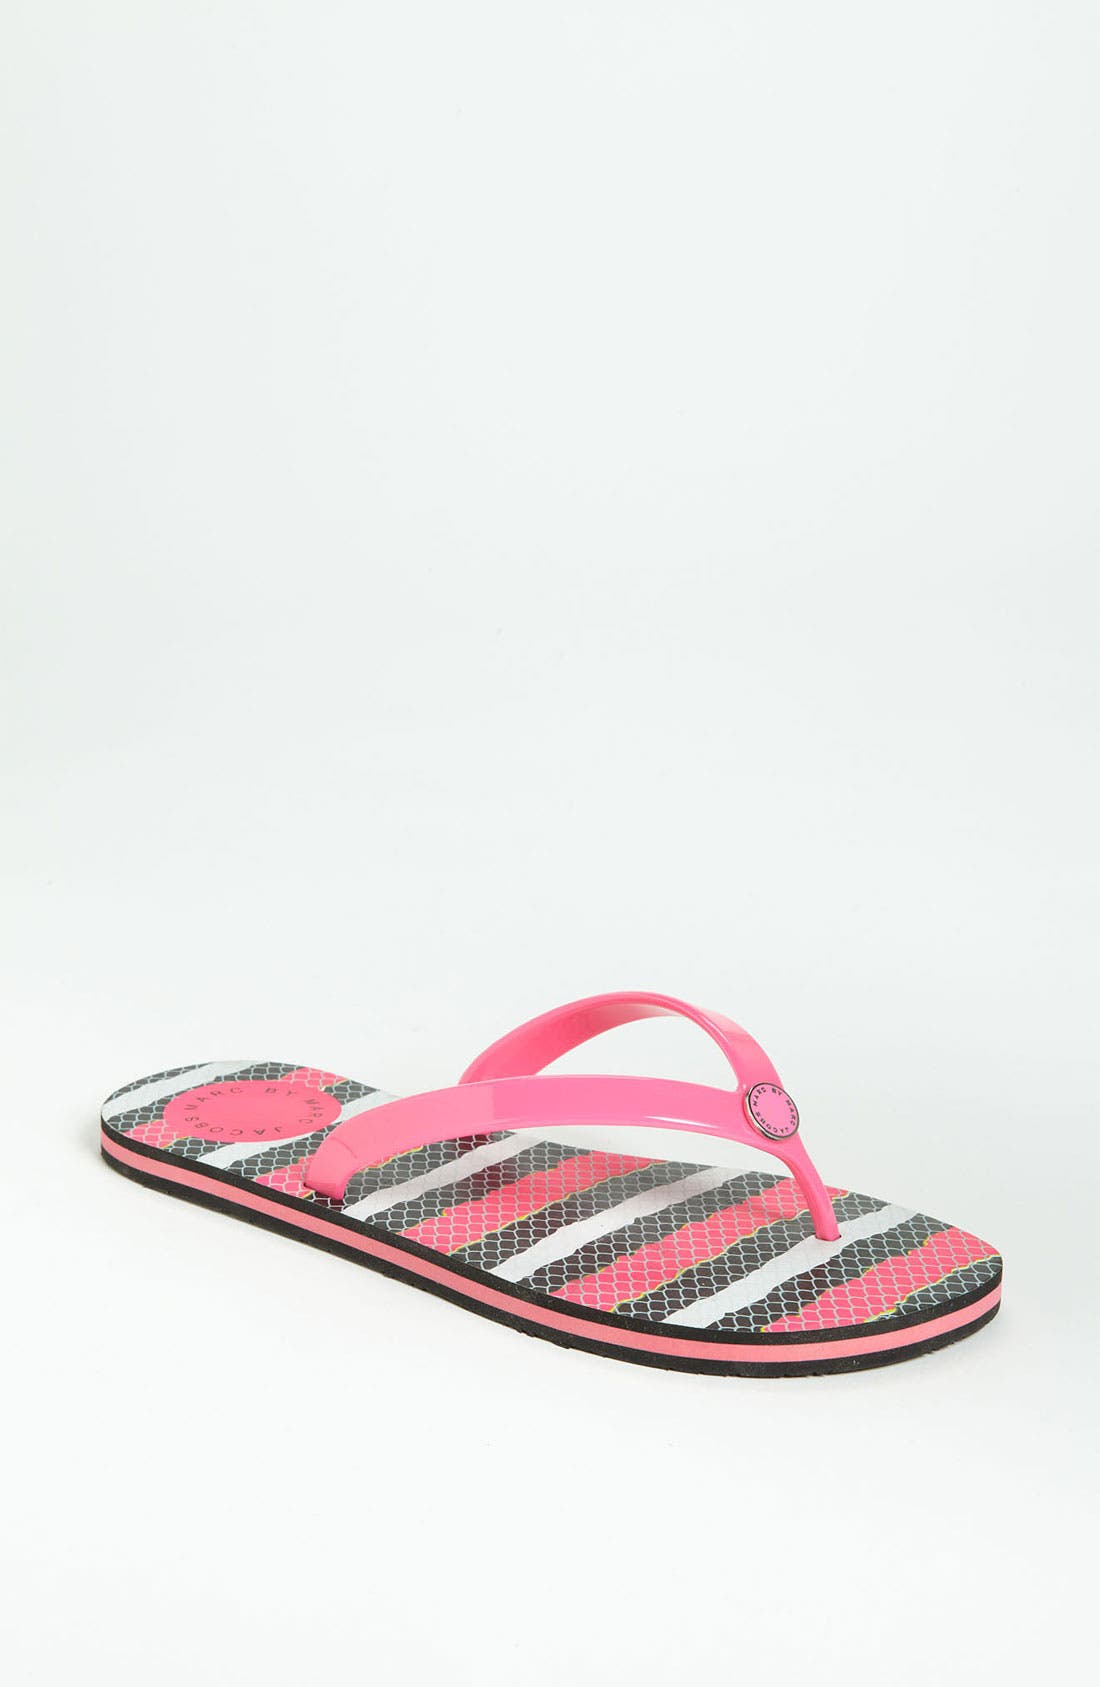 Alternate Image 1 Selected - MARC BY MARC JACOBS 'Anemone' Flip Flop